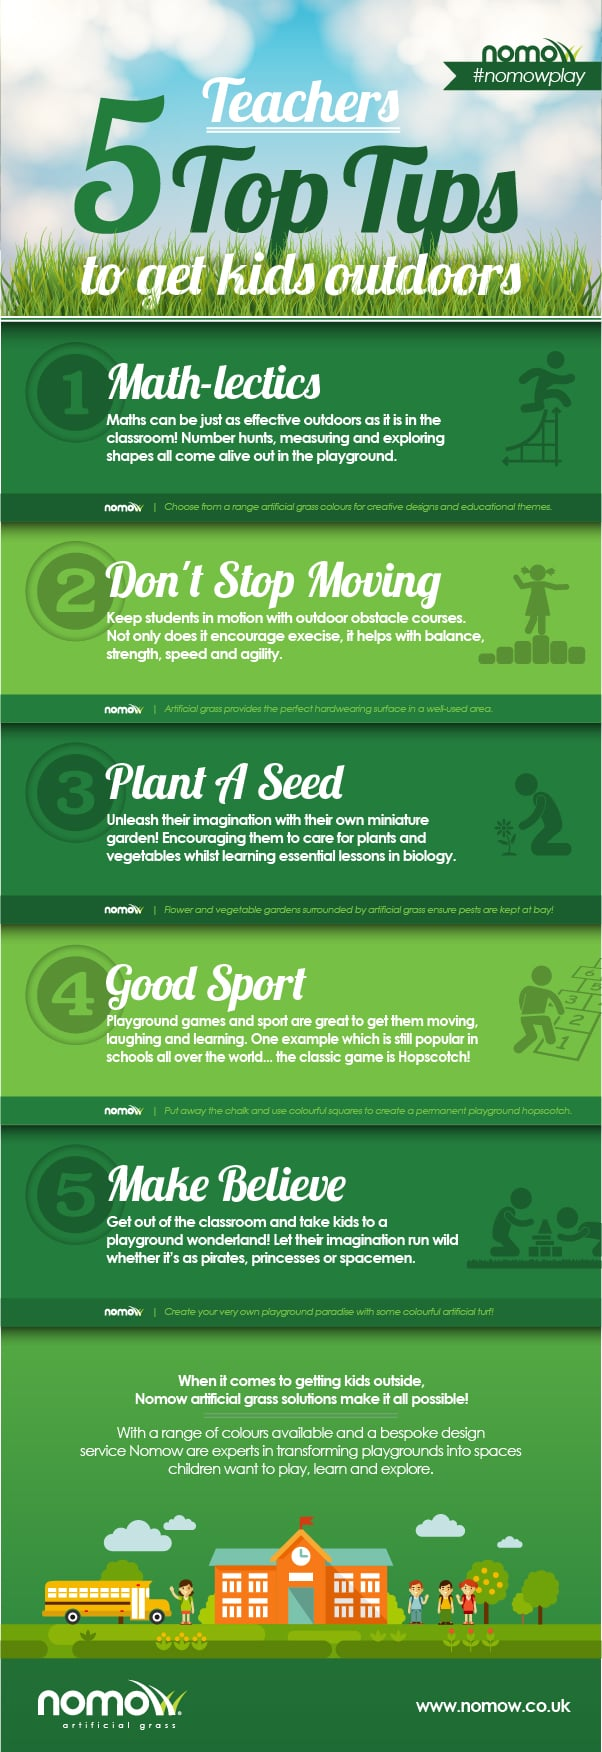 Teachers 5 Top Tips to Get Kids Outdoors [Infographic]